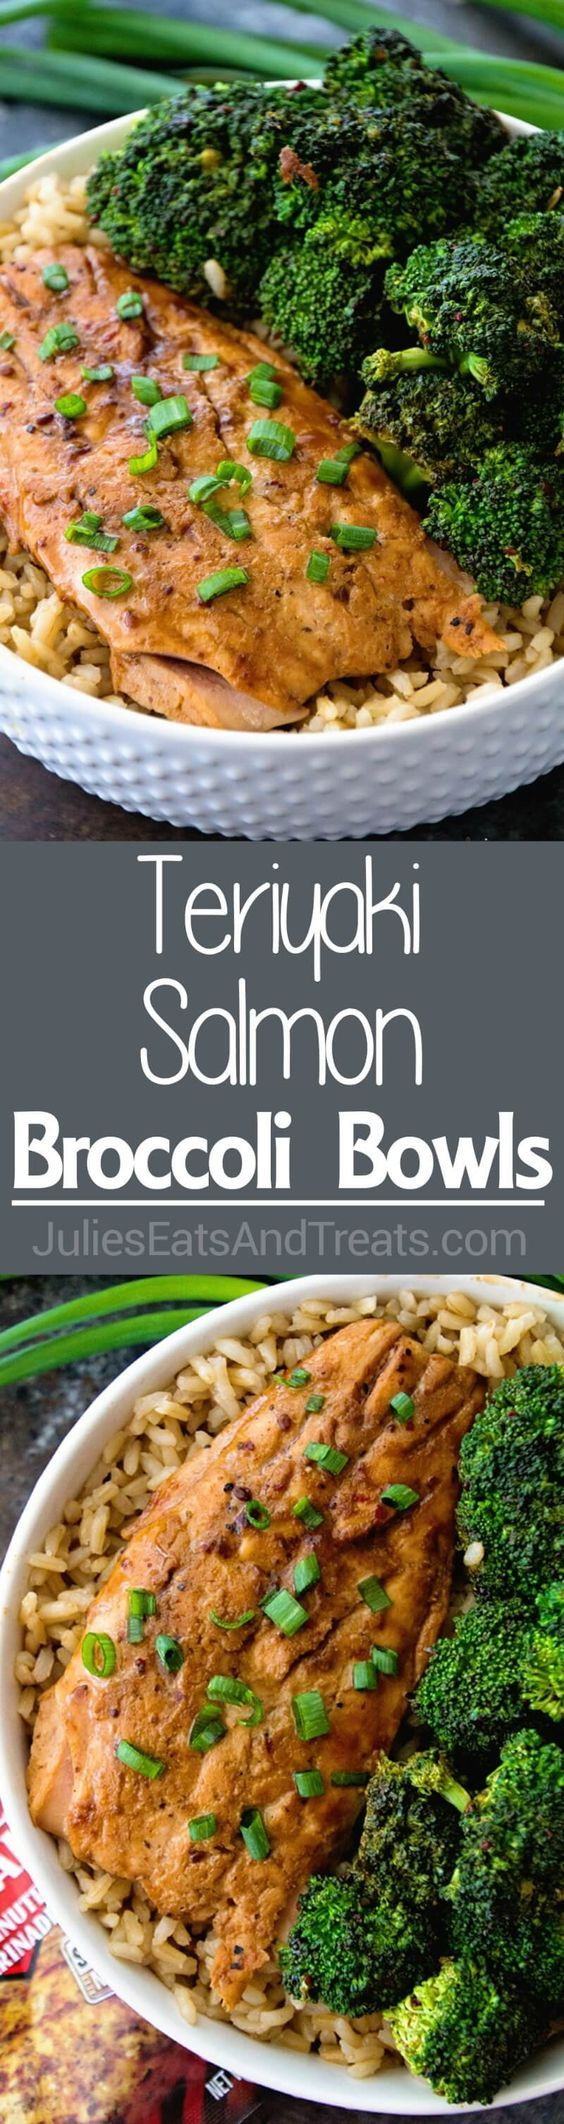 Teriyaki Salmon & Broccoli Bowls ~ delicious, healthy dinner that's quick and easy to prepare...only four ingredients and ready in 30 minutes!